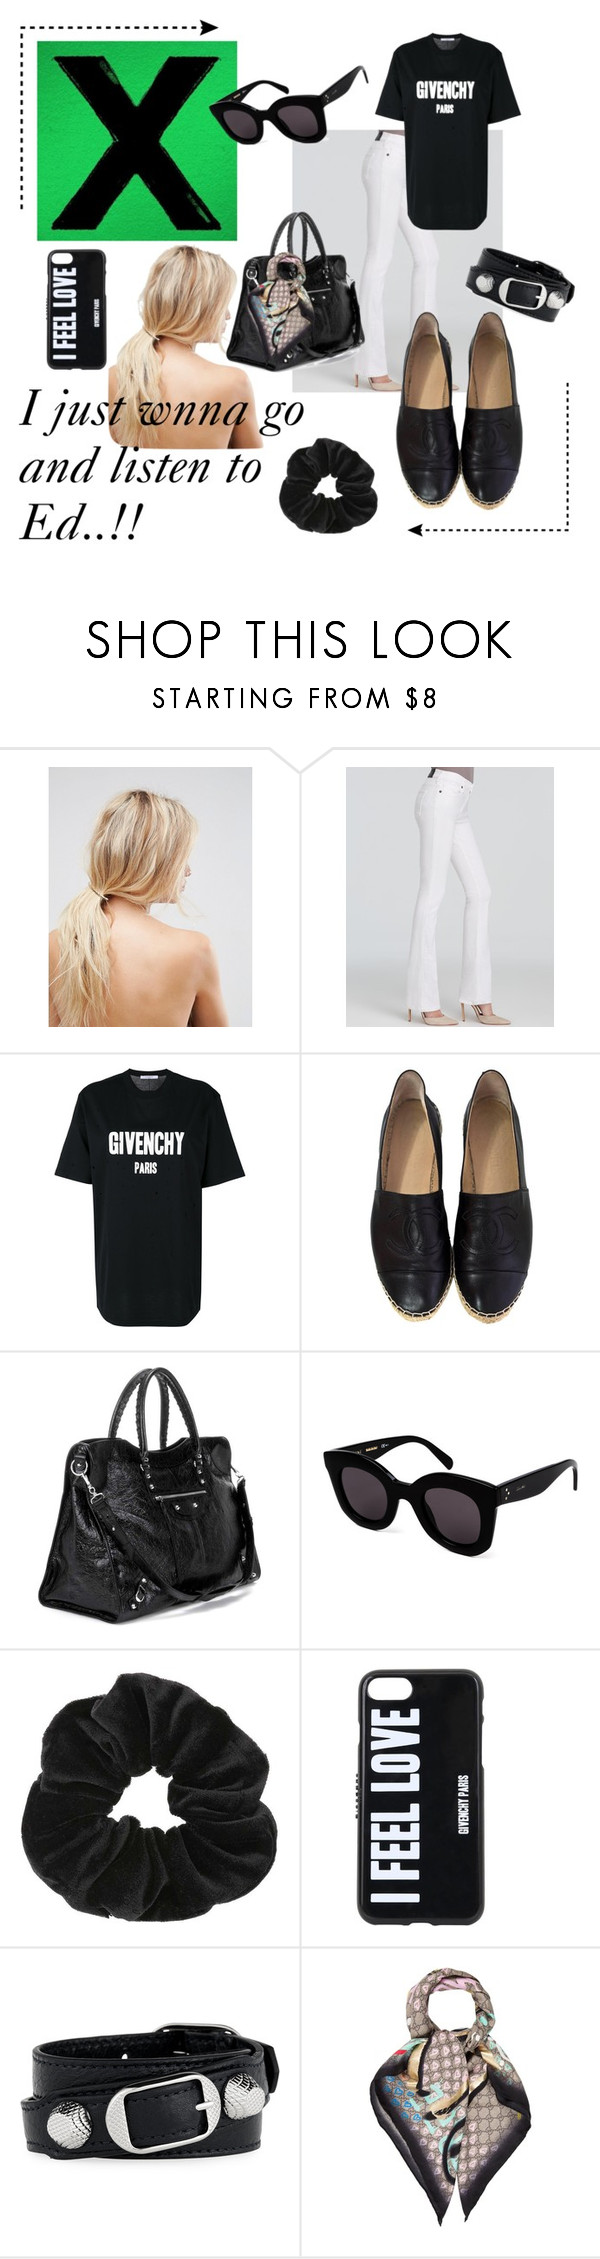 """Untitled #6"" by kajsasjostrom on Polyvore featuring ASOS, True Religion, Givenchy, Balenciaga, CÉLINE, Miss Selfridge and Gucci"